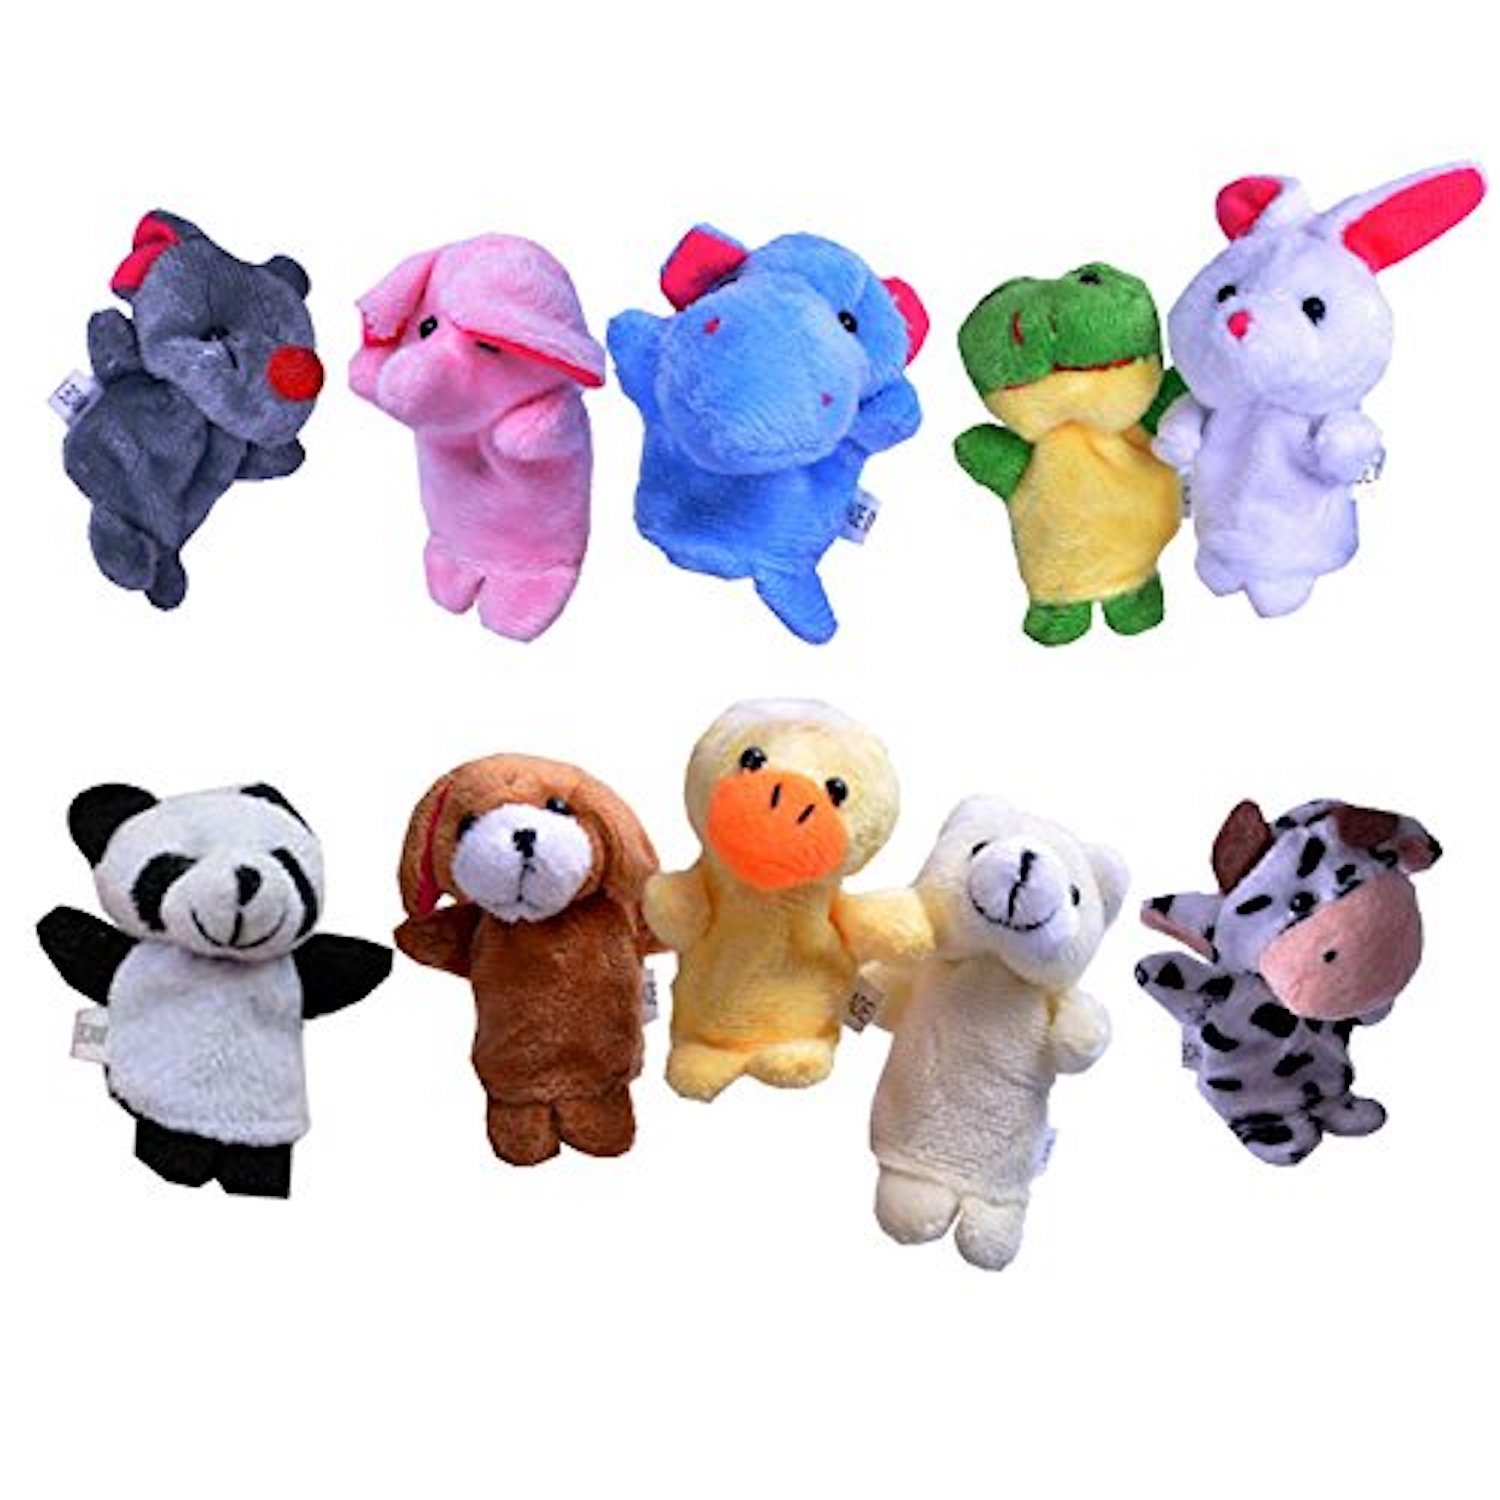 10 Finger Puppets Set for Children | Soft Toys for Kids | Velvet Animal Birthday Party Giveaways Gifts | Cute Animals Hand Toy Beyond Dreams